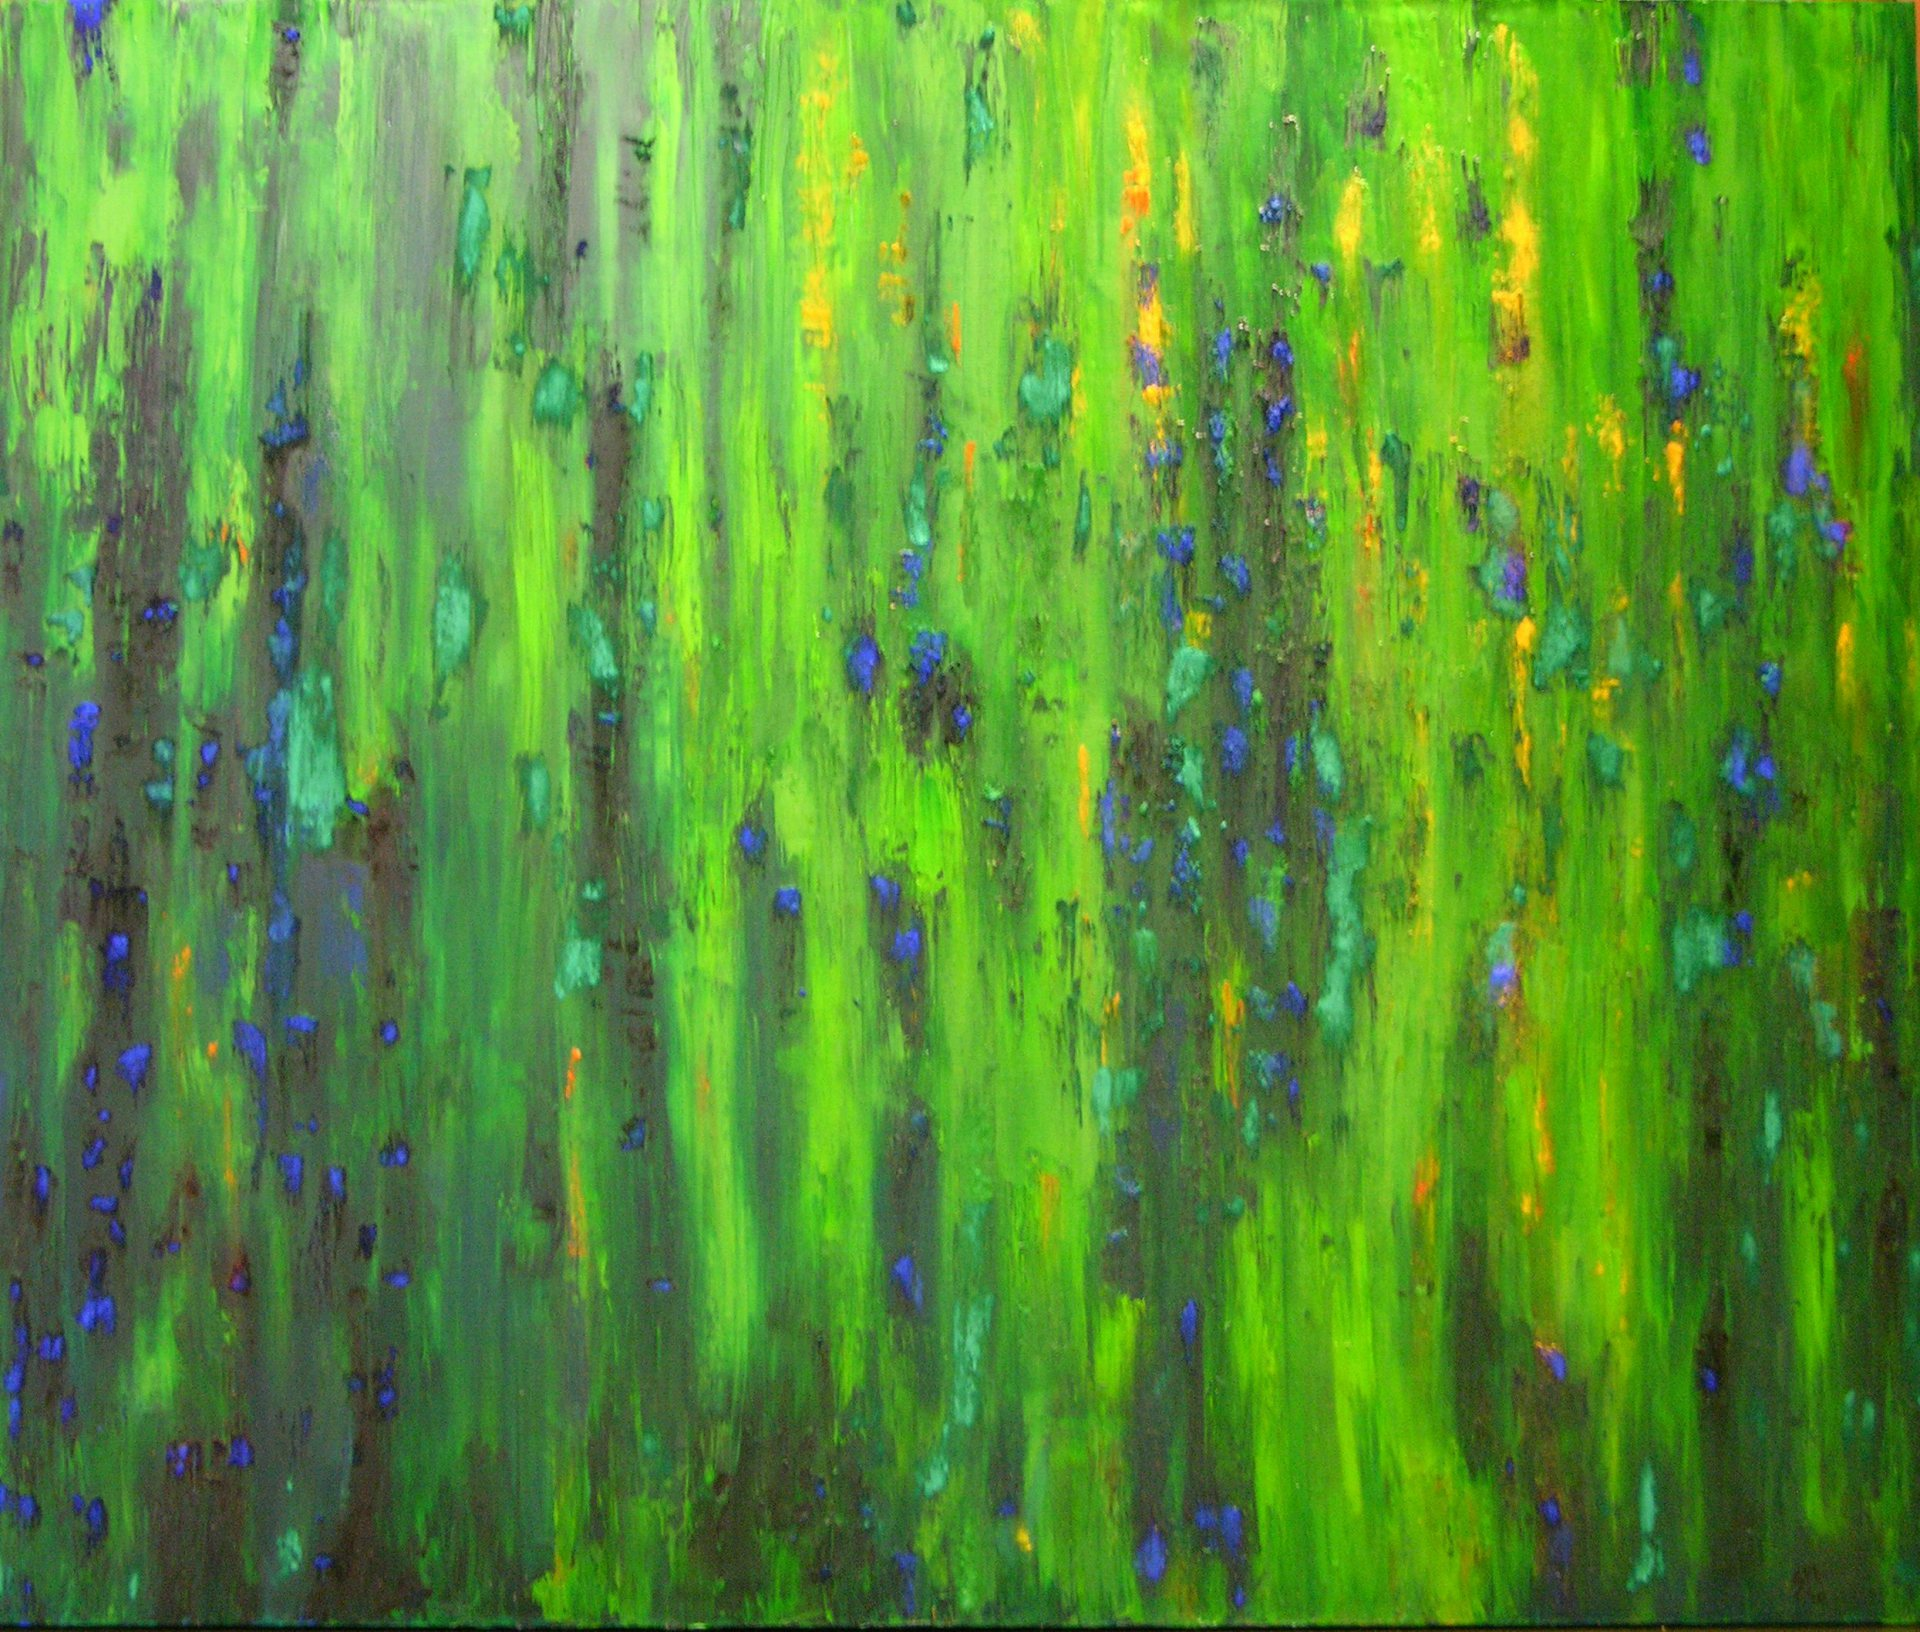 Meadow Serenity oil and dried pigments on canvas painting by Sabrina Puppin